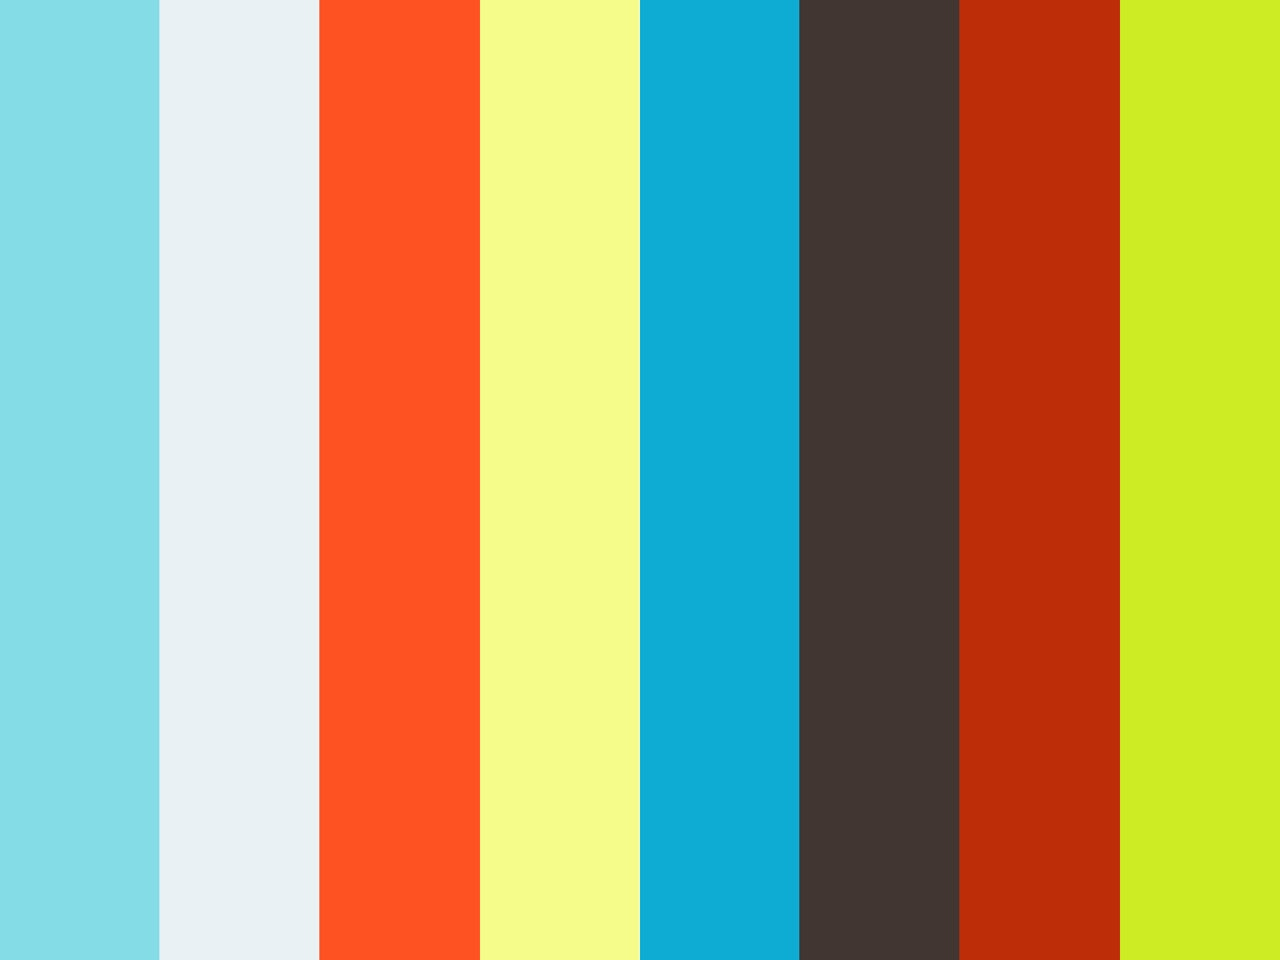 Singing my own song